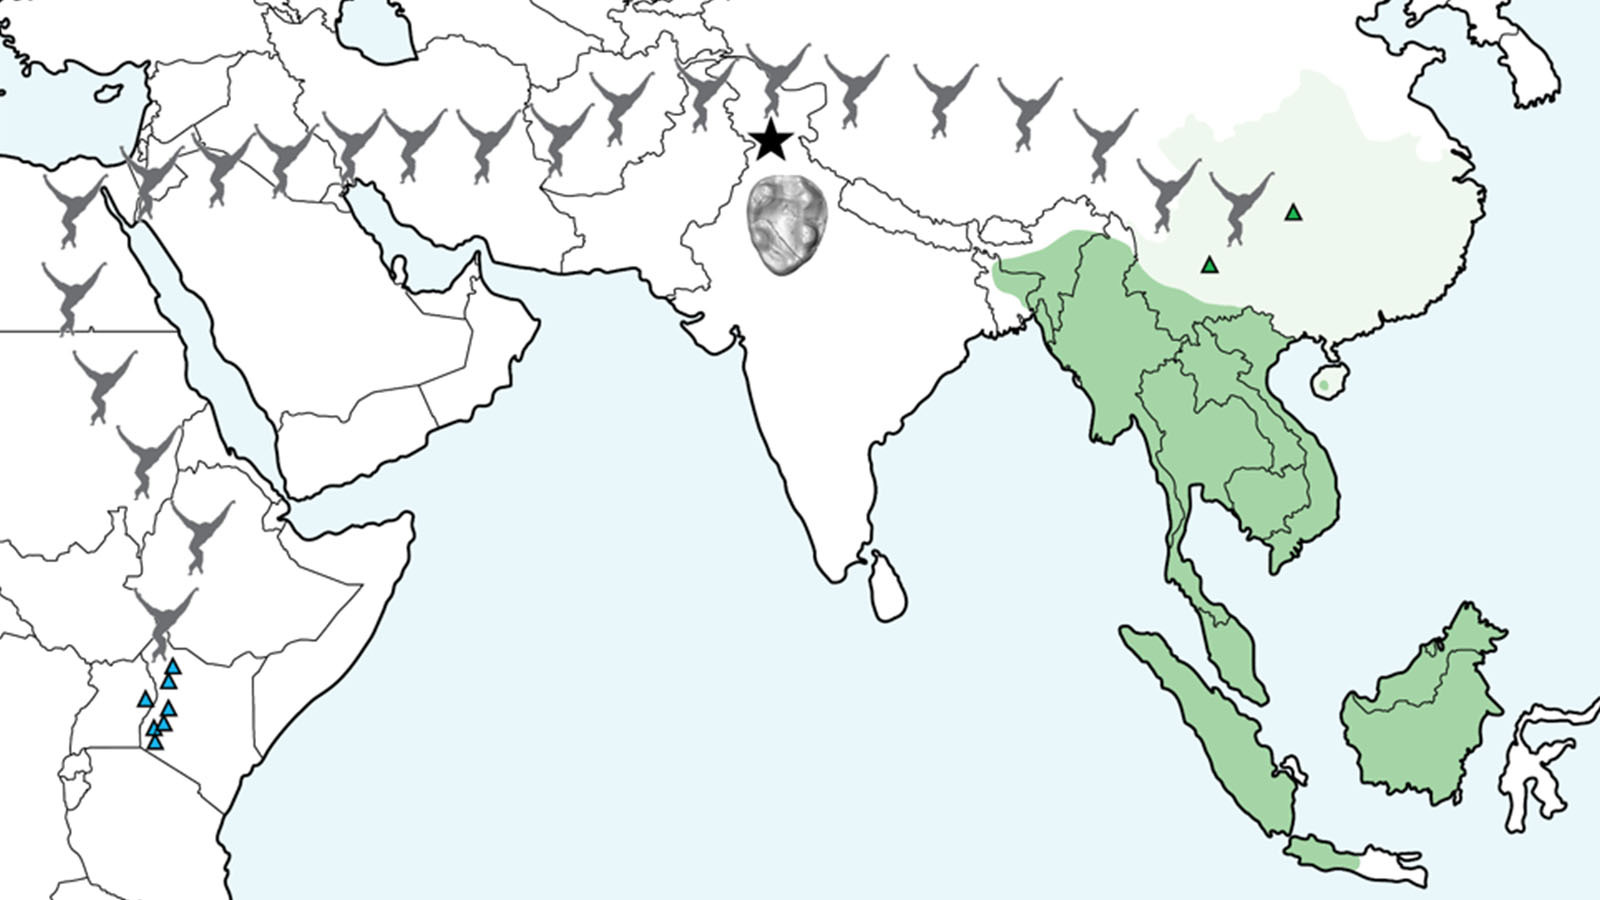 Map illustrating the location of Kapi (black star) relative to modern (dark green) and historical (light green) populations of lesser apes and the approximate distribution of early fossil apes in East Africa (blue triangles). Green triangles mark the location of previously discovered fossil gibbons.  The new fossil is millions of years older than any previously known fossil gibbon and highlights their migration from Africa to Asia.  Illustration by Luci Betti-Nash.